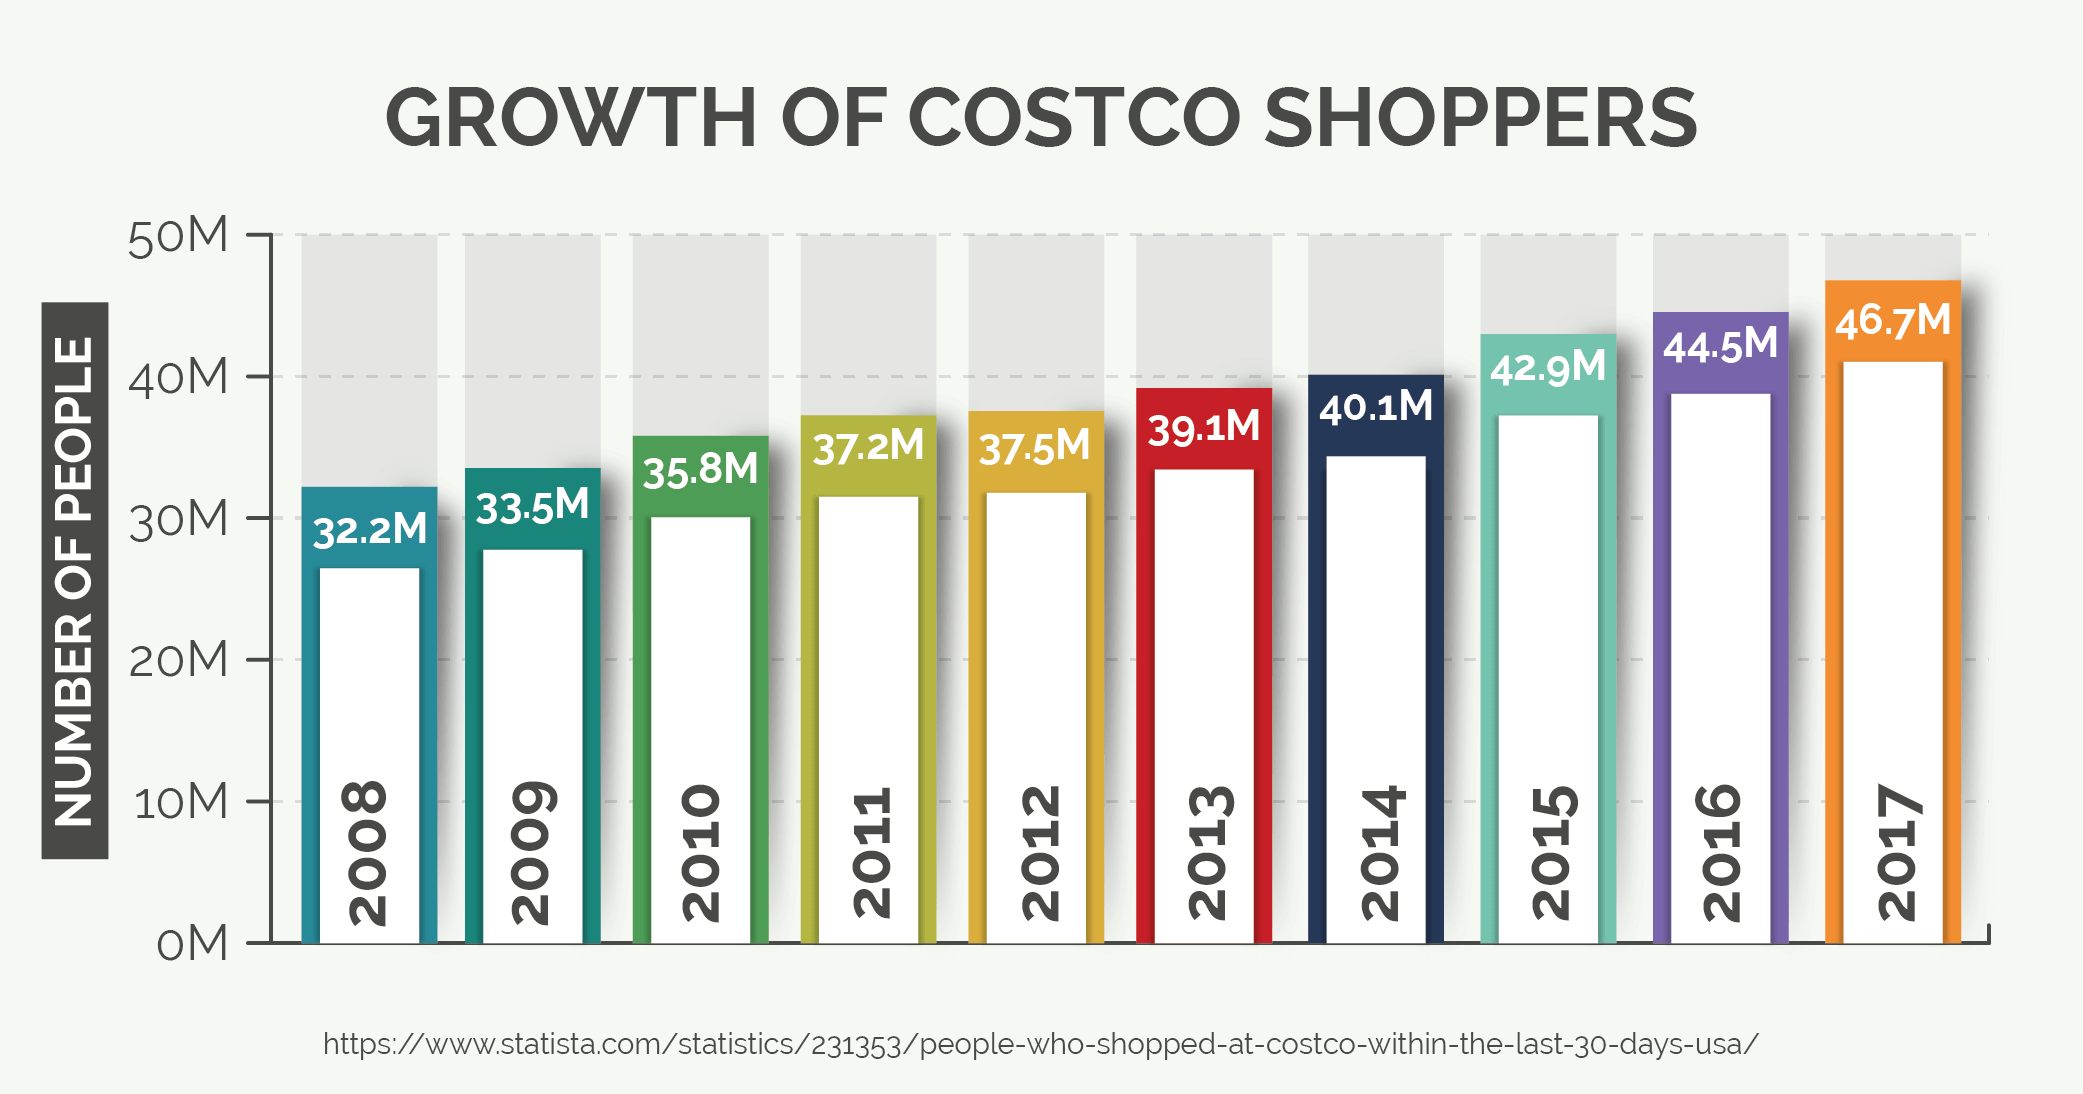 Growth of Costco Shoppers